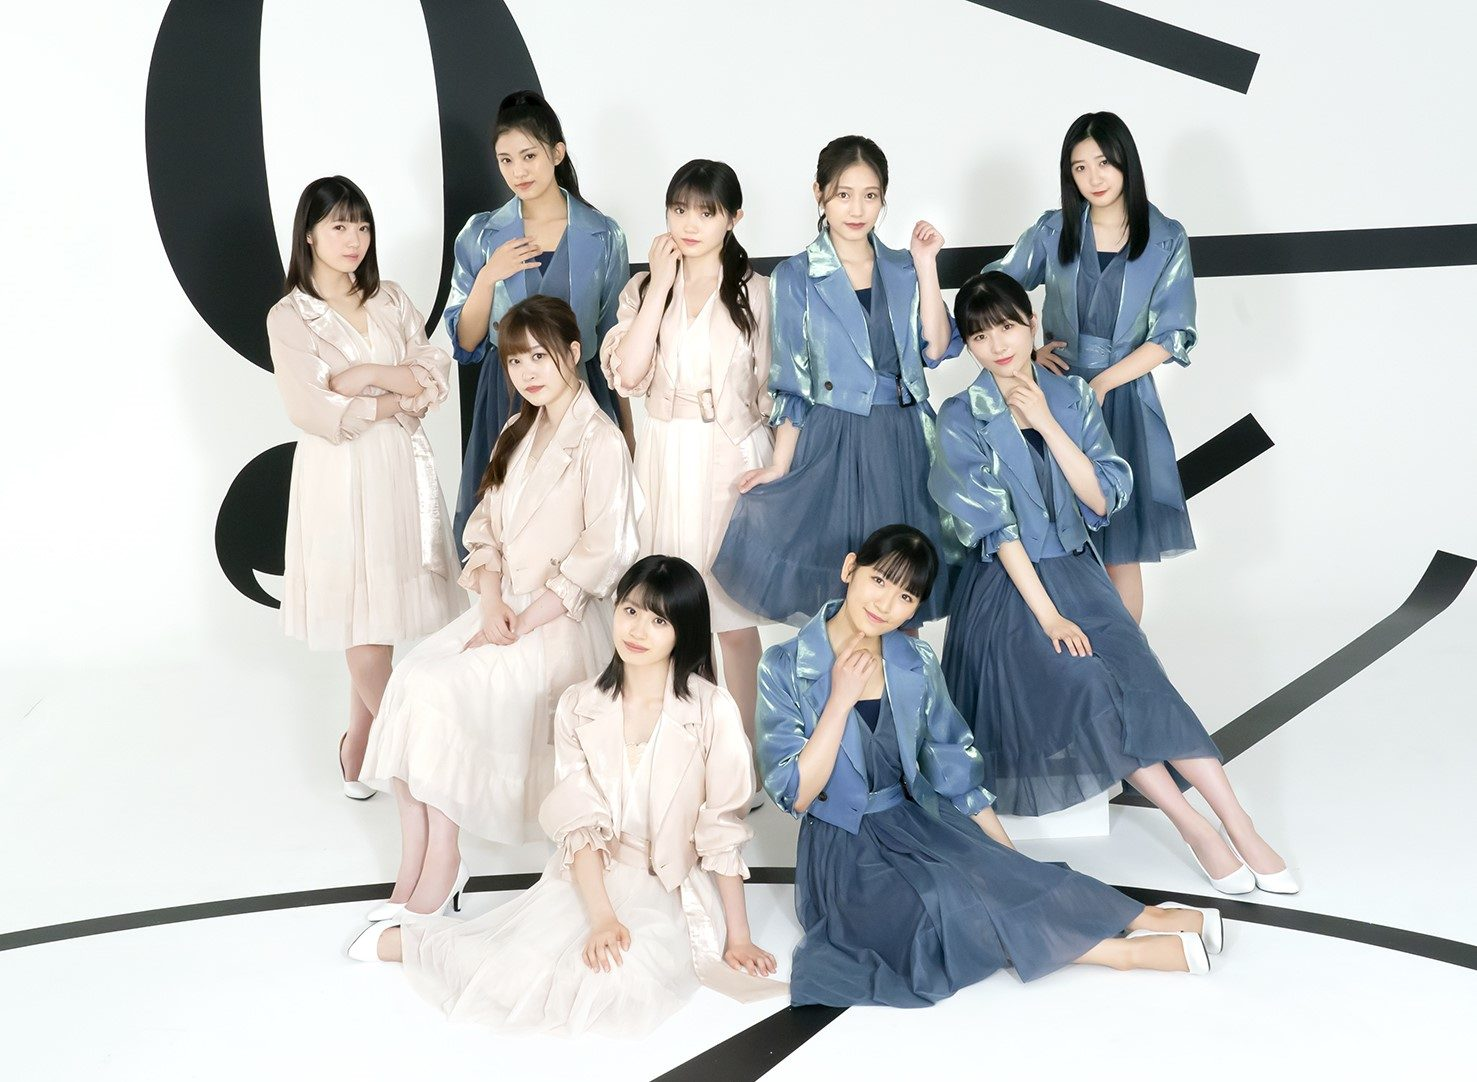 『Hello! Project 2020 Autumn 〜The Ballad〜 Extra Number』のつばきファクトリー